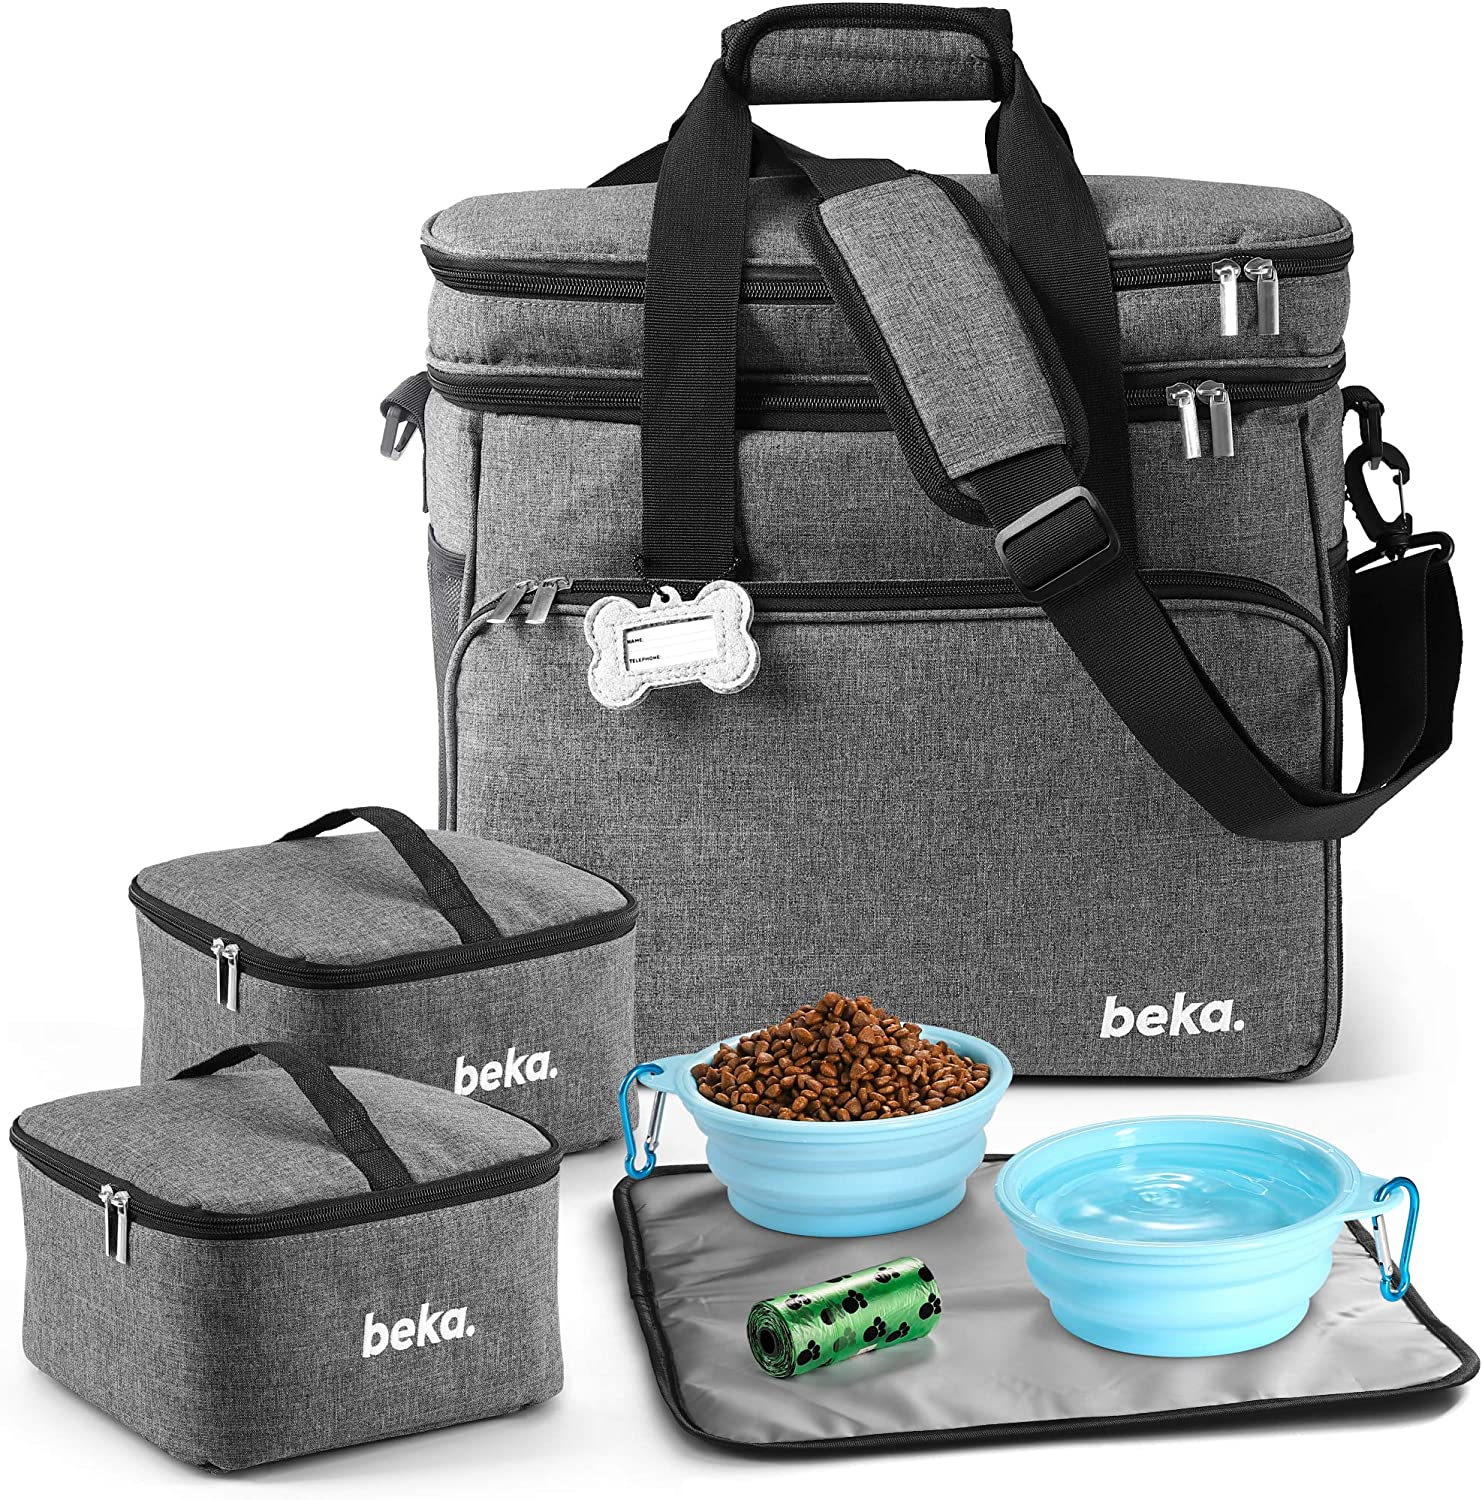 beka. Dog Travel Bag - Dog Travel Kit with 2 Collapsible Silicone Bowls, 2 Food Containers, Multi-Use Pockets for Pet Accessories - Ideal Mobile Dog Gear Weekender - Organizer Tote for Dogs or Cats